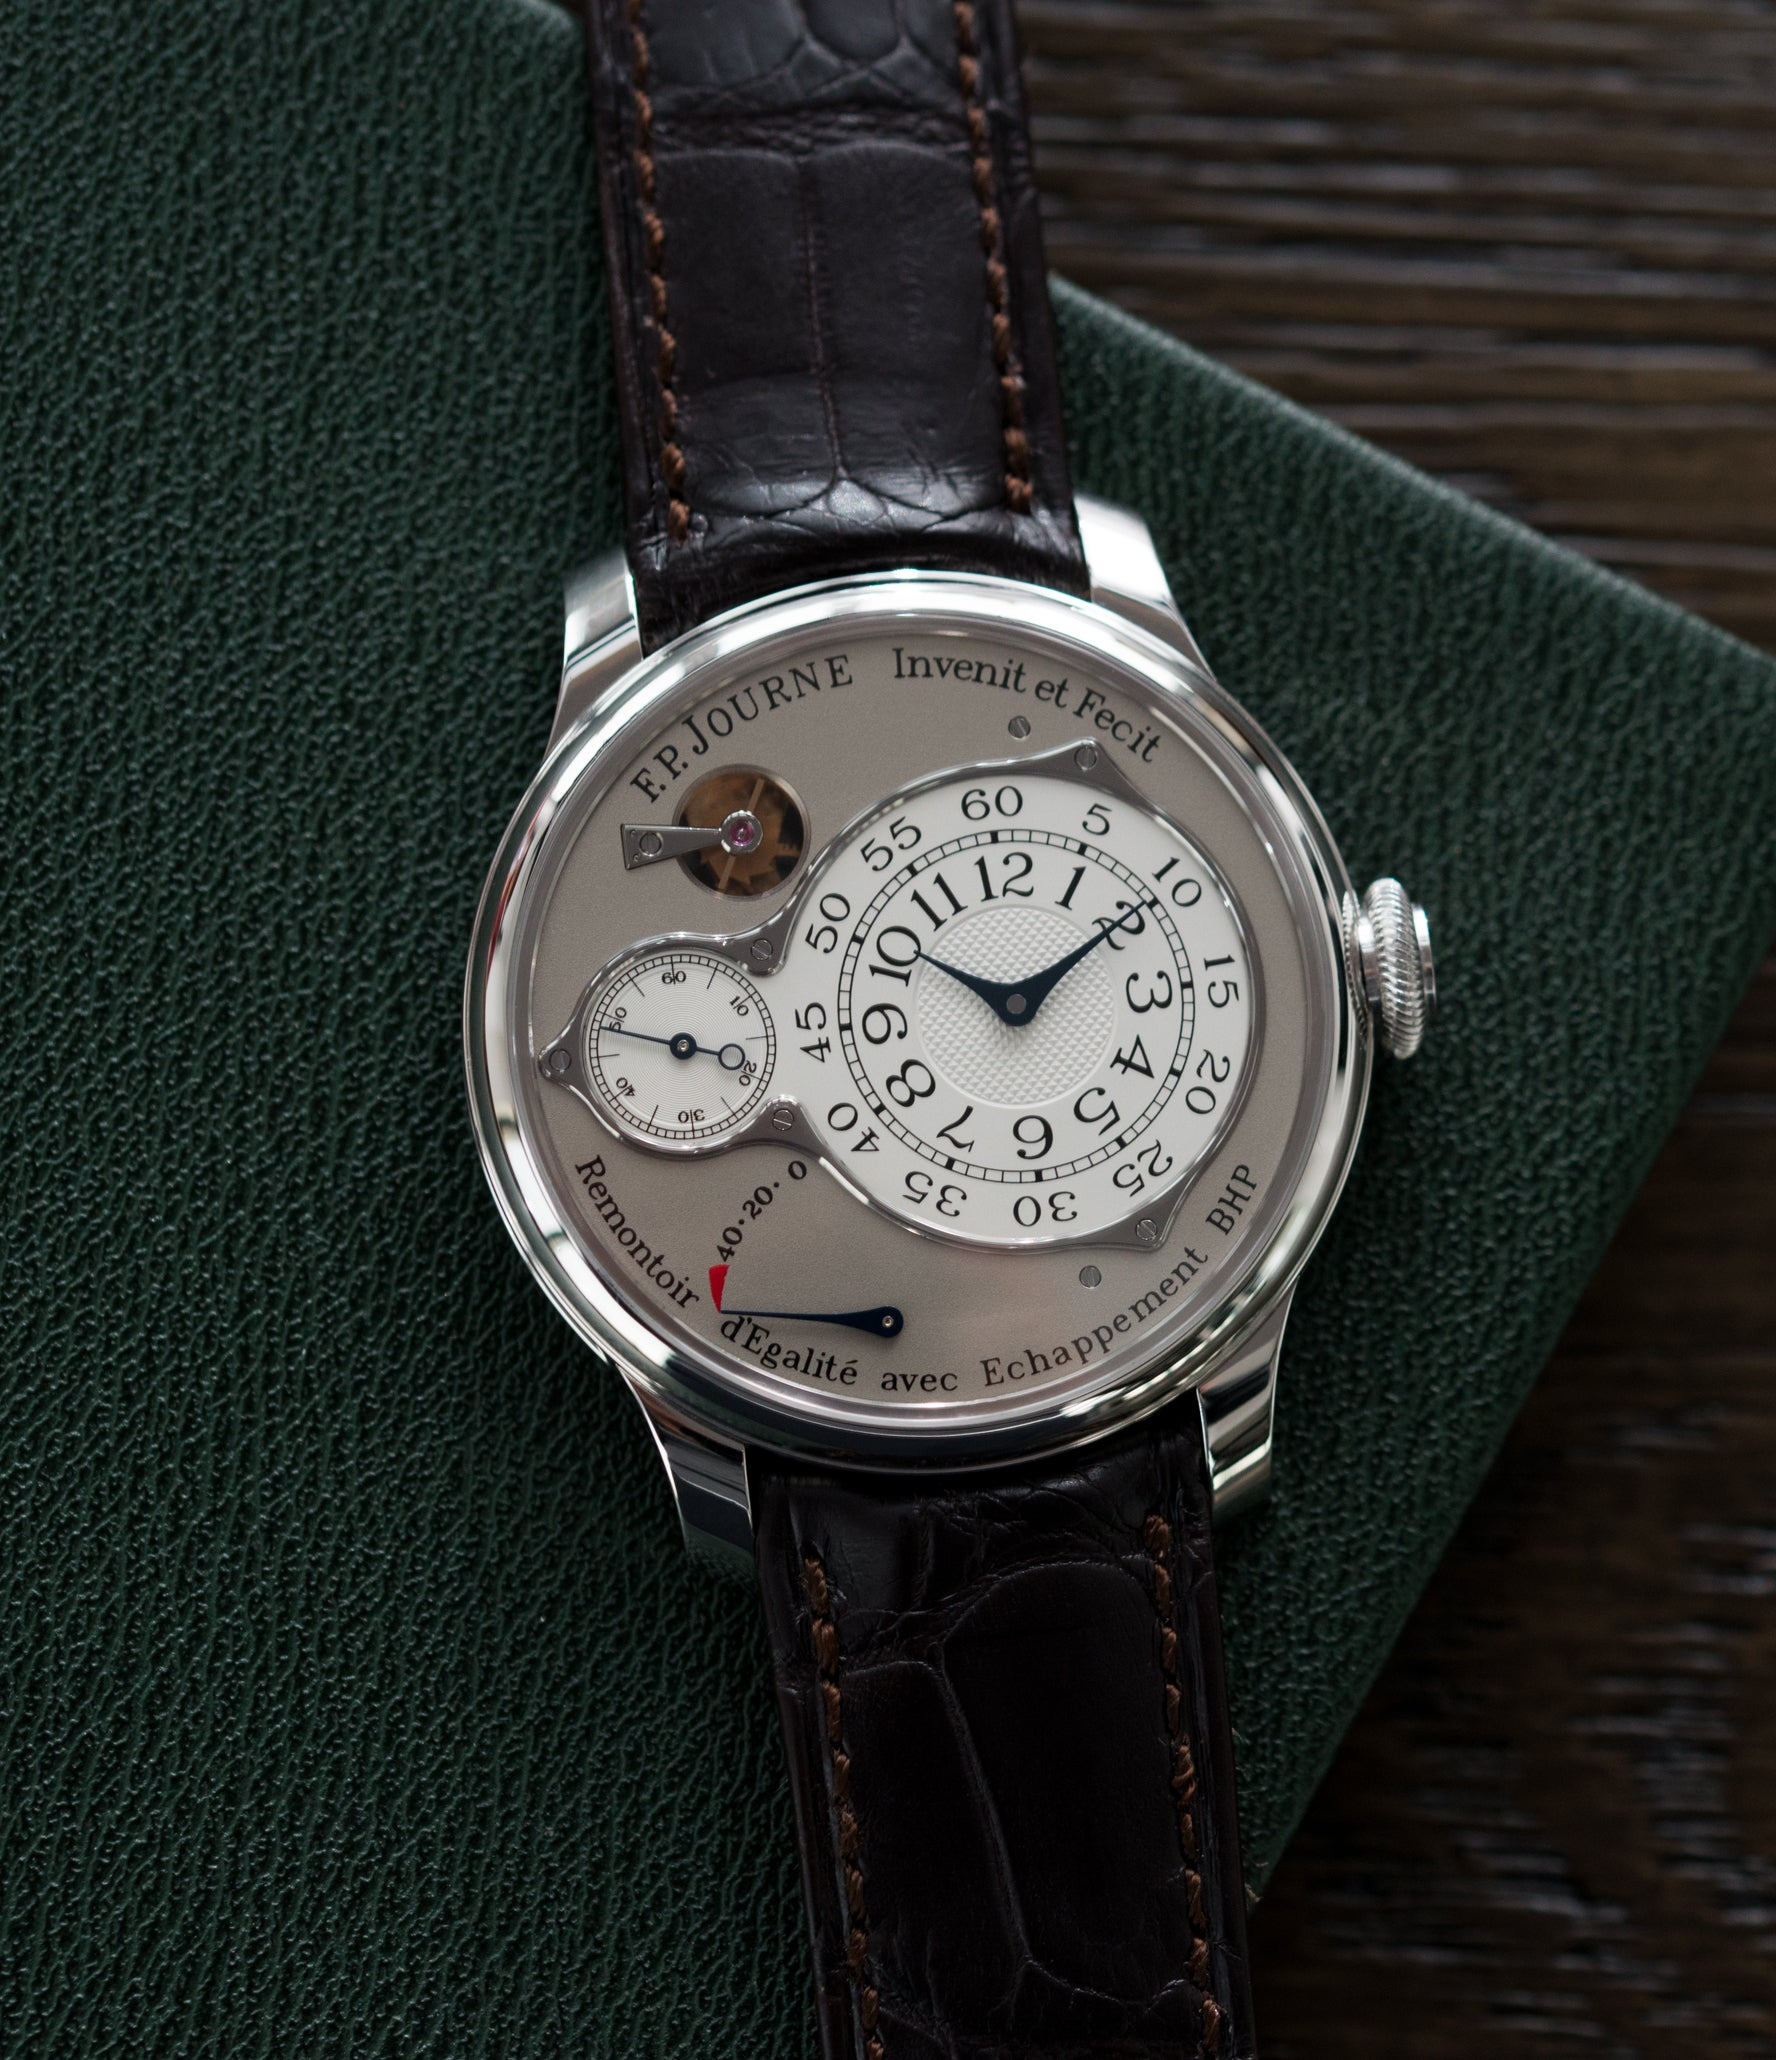 shop F. P. Journe Chronometre Optimum platinum rare watch for sale online at A Collected Man London approved retailer of independent watchmakers